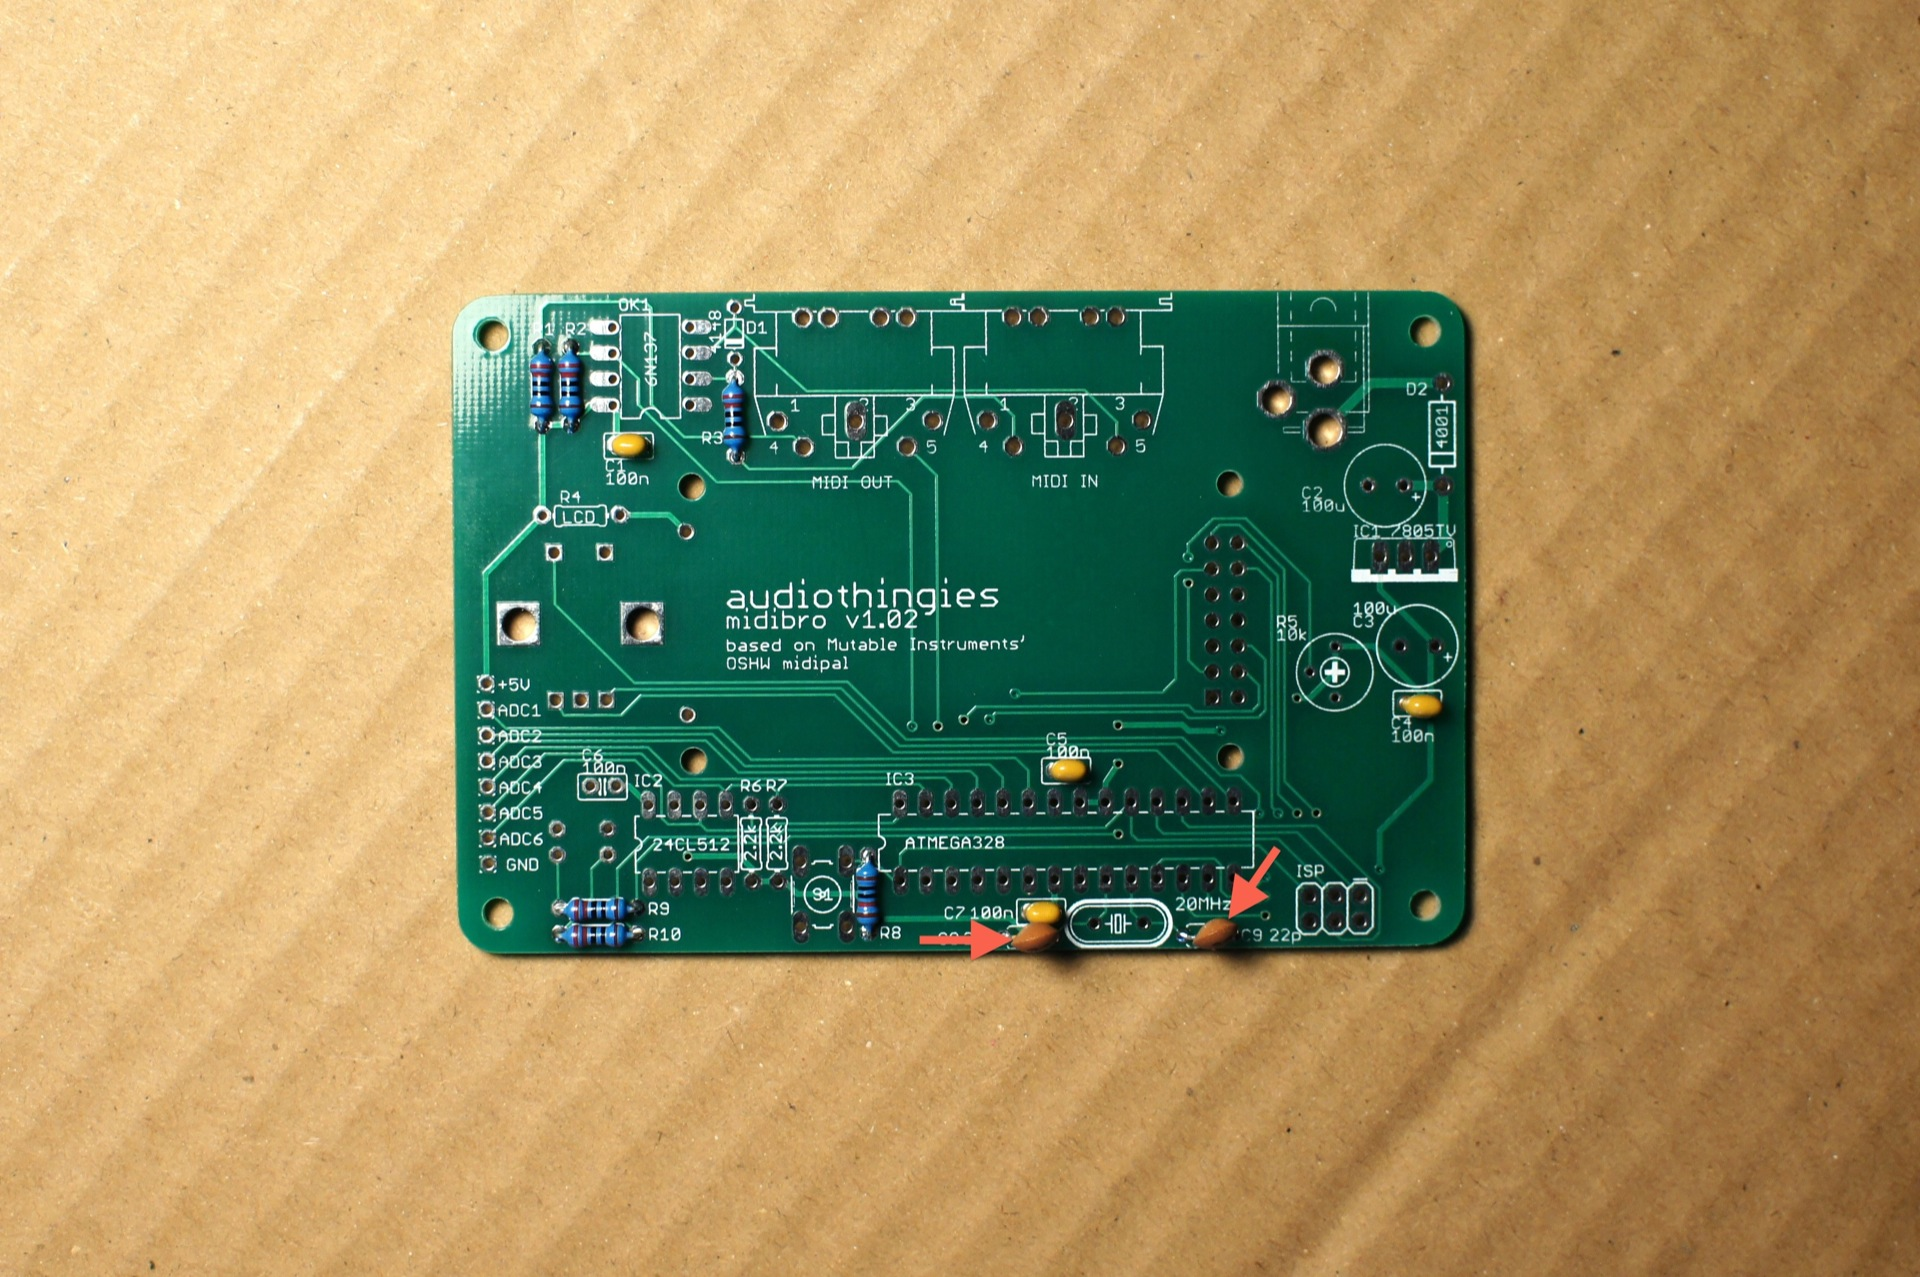 midibro soldering guide audiothingiesNeed To Desolder D1 And D2 In Order To Properly Identify These #12